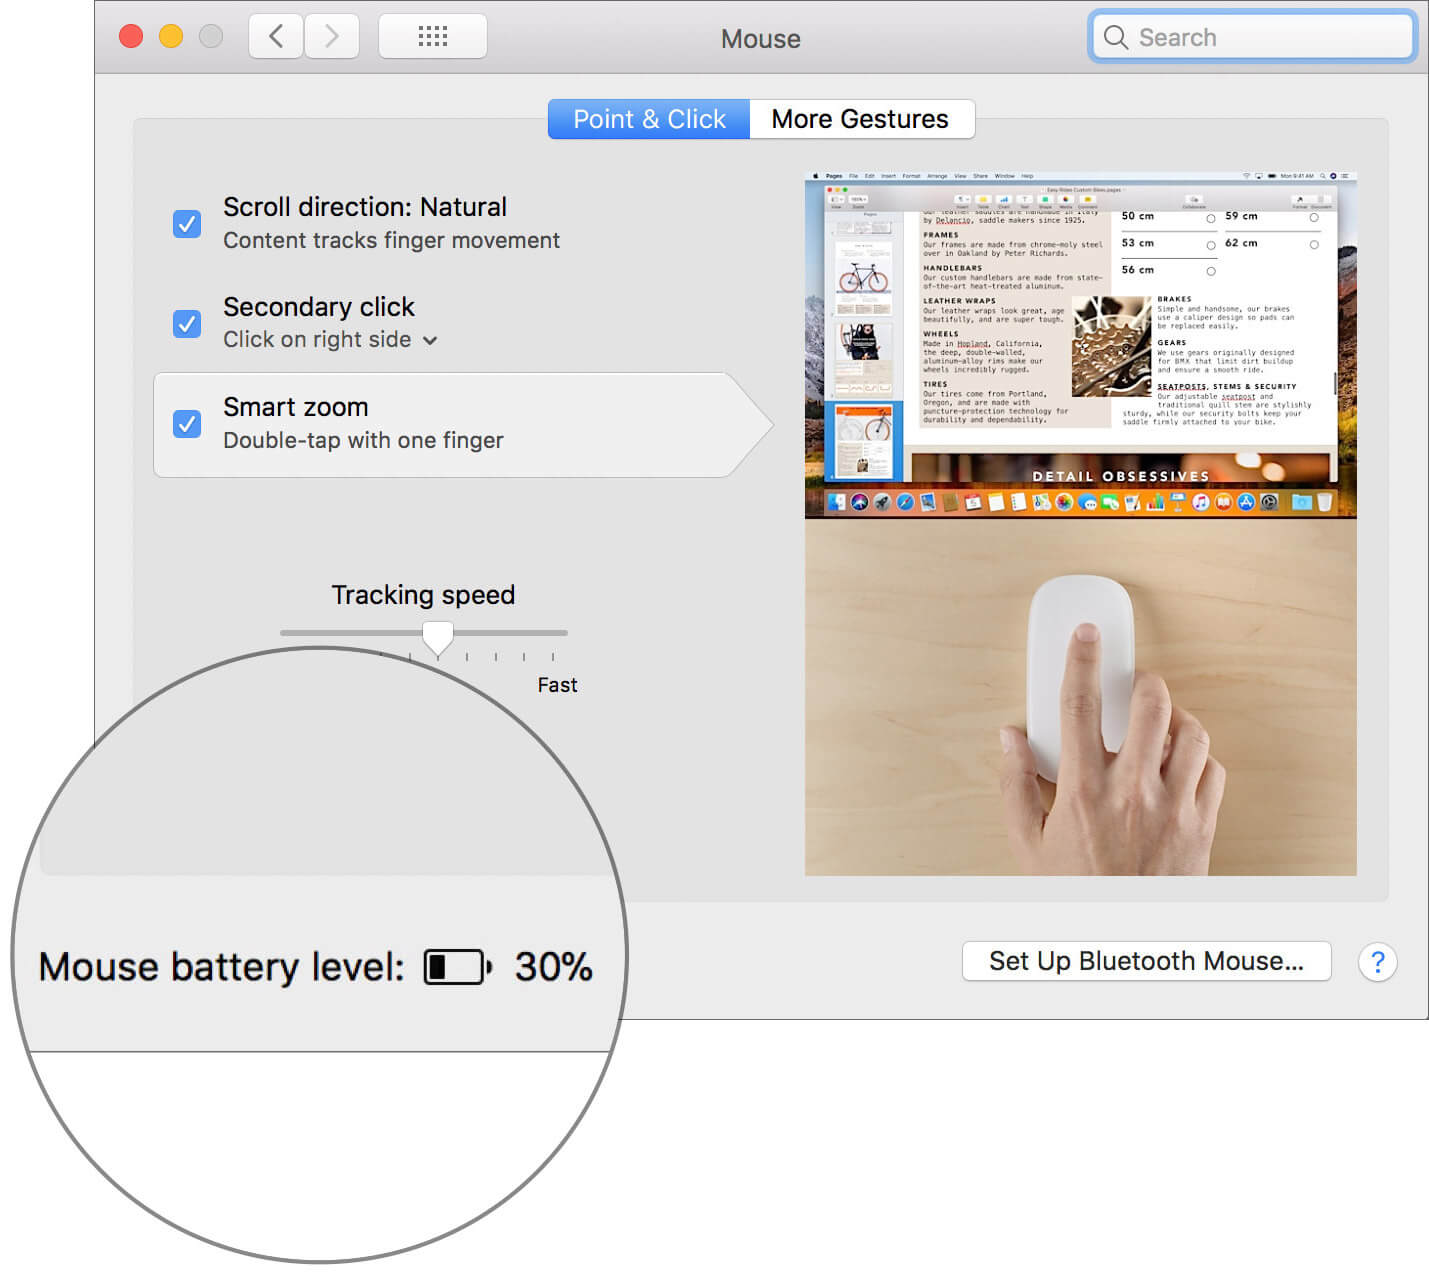 Check battery level of the Bluetooth Mouse on Mac